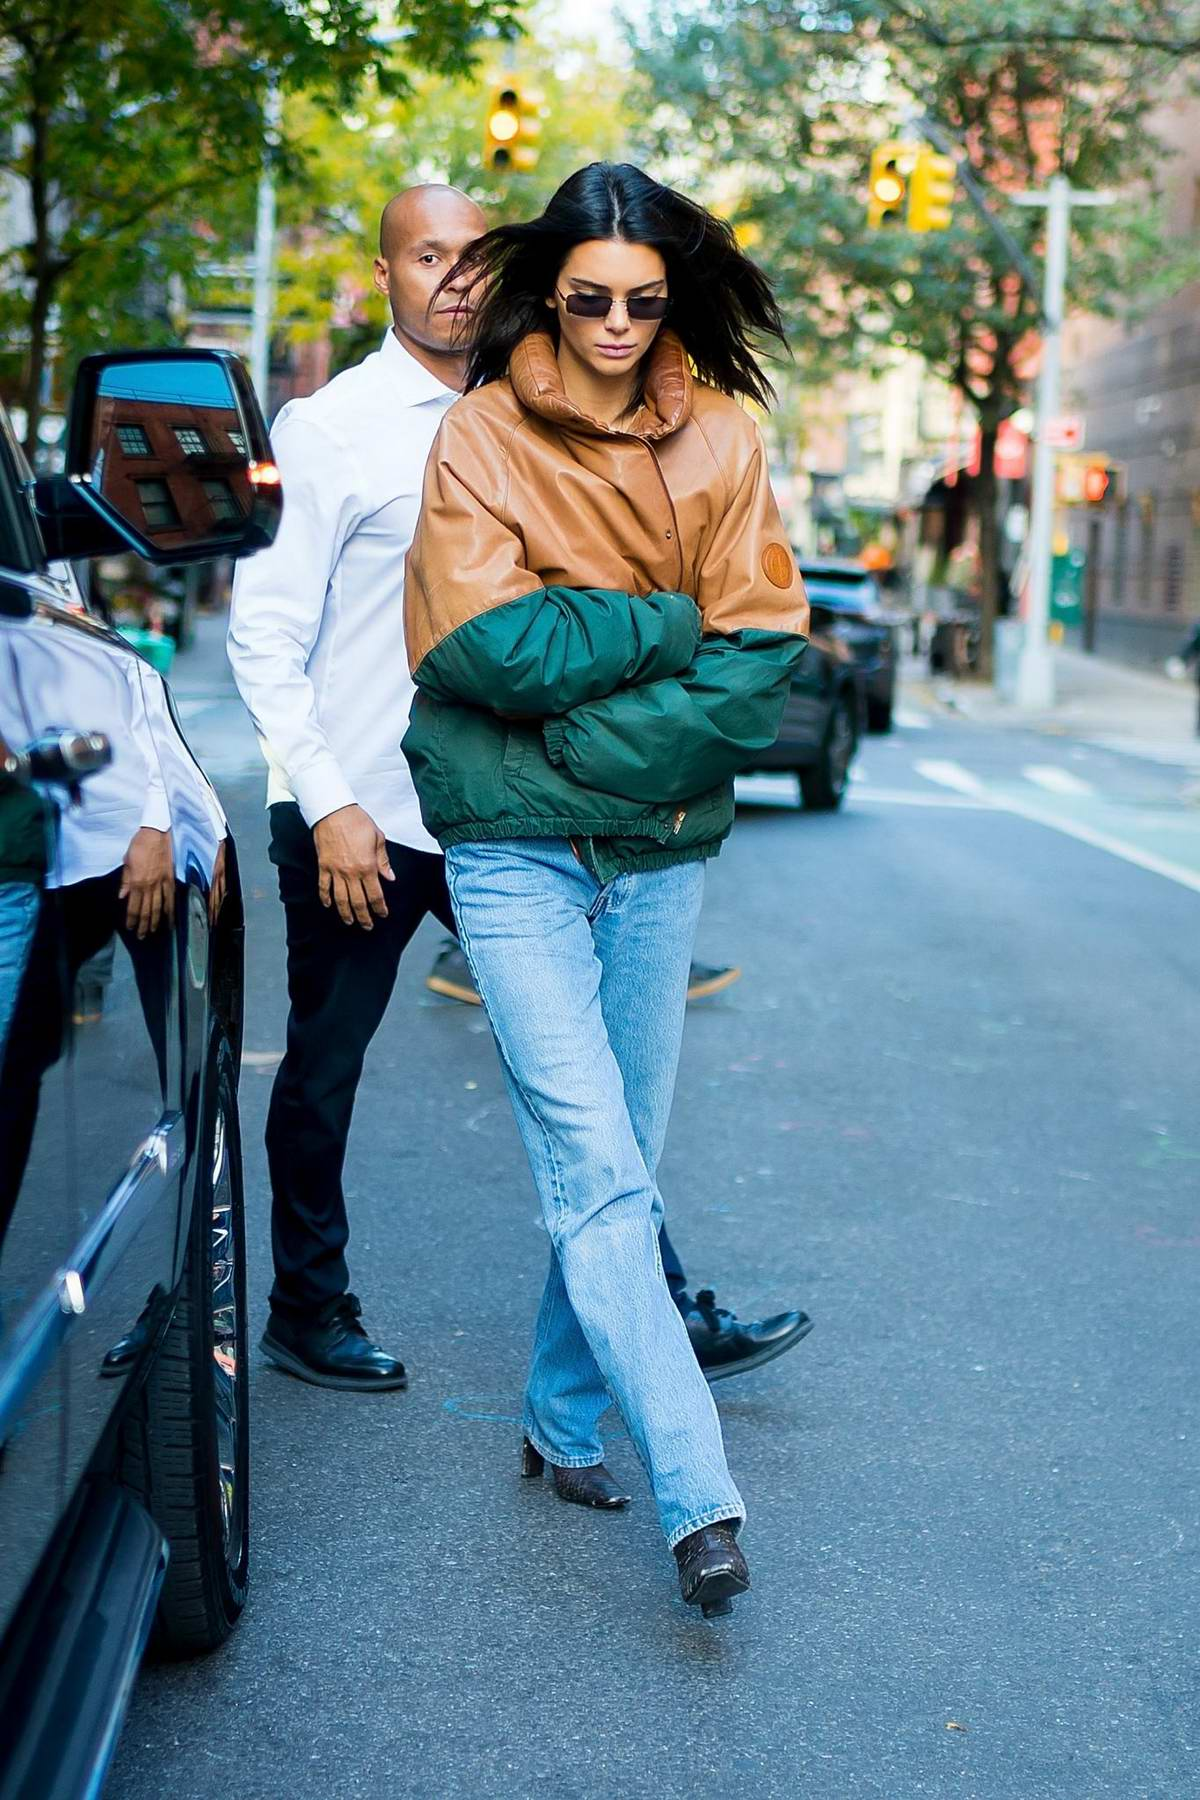 Kendall Jenner steps out wearing a bicolored windbreaker for her morning coffee in SoHo, New York City